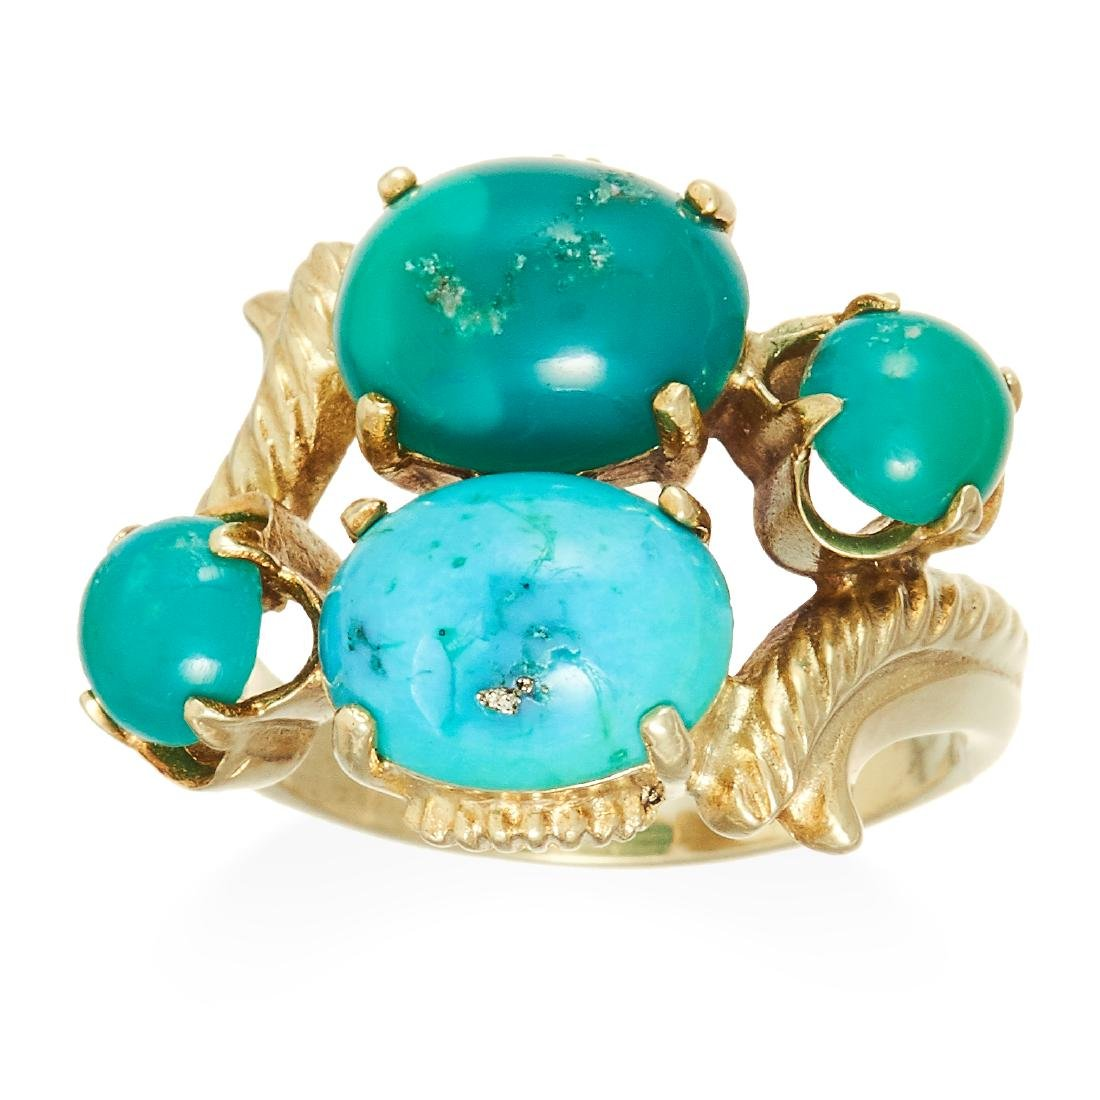 A TURQUOISE DRESS RING in high carat yellow gold, set